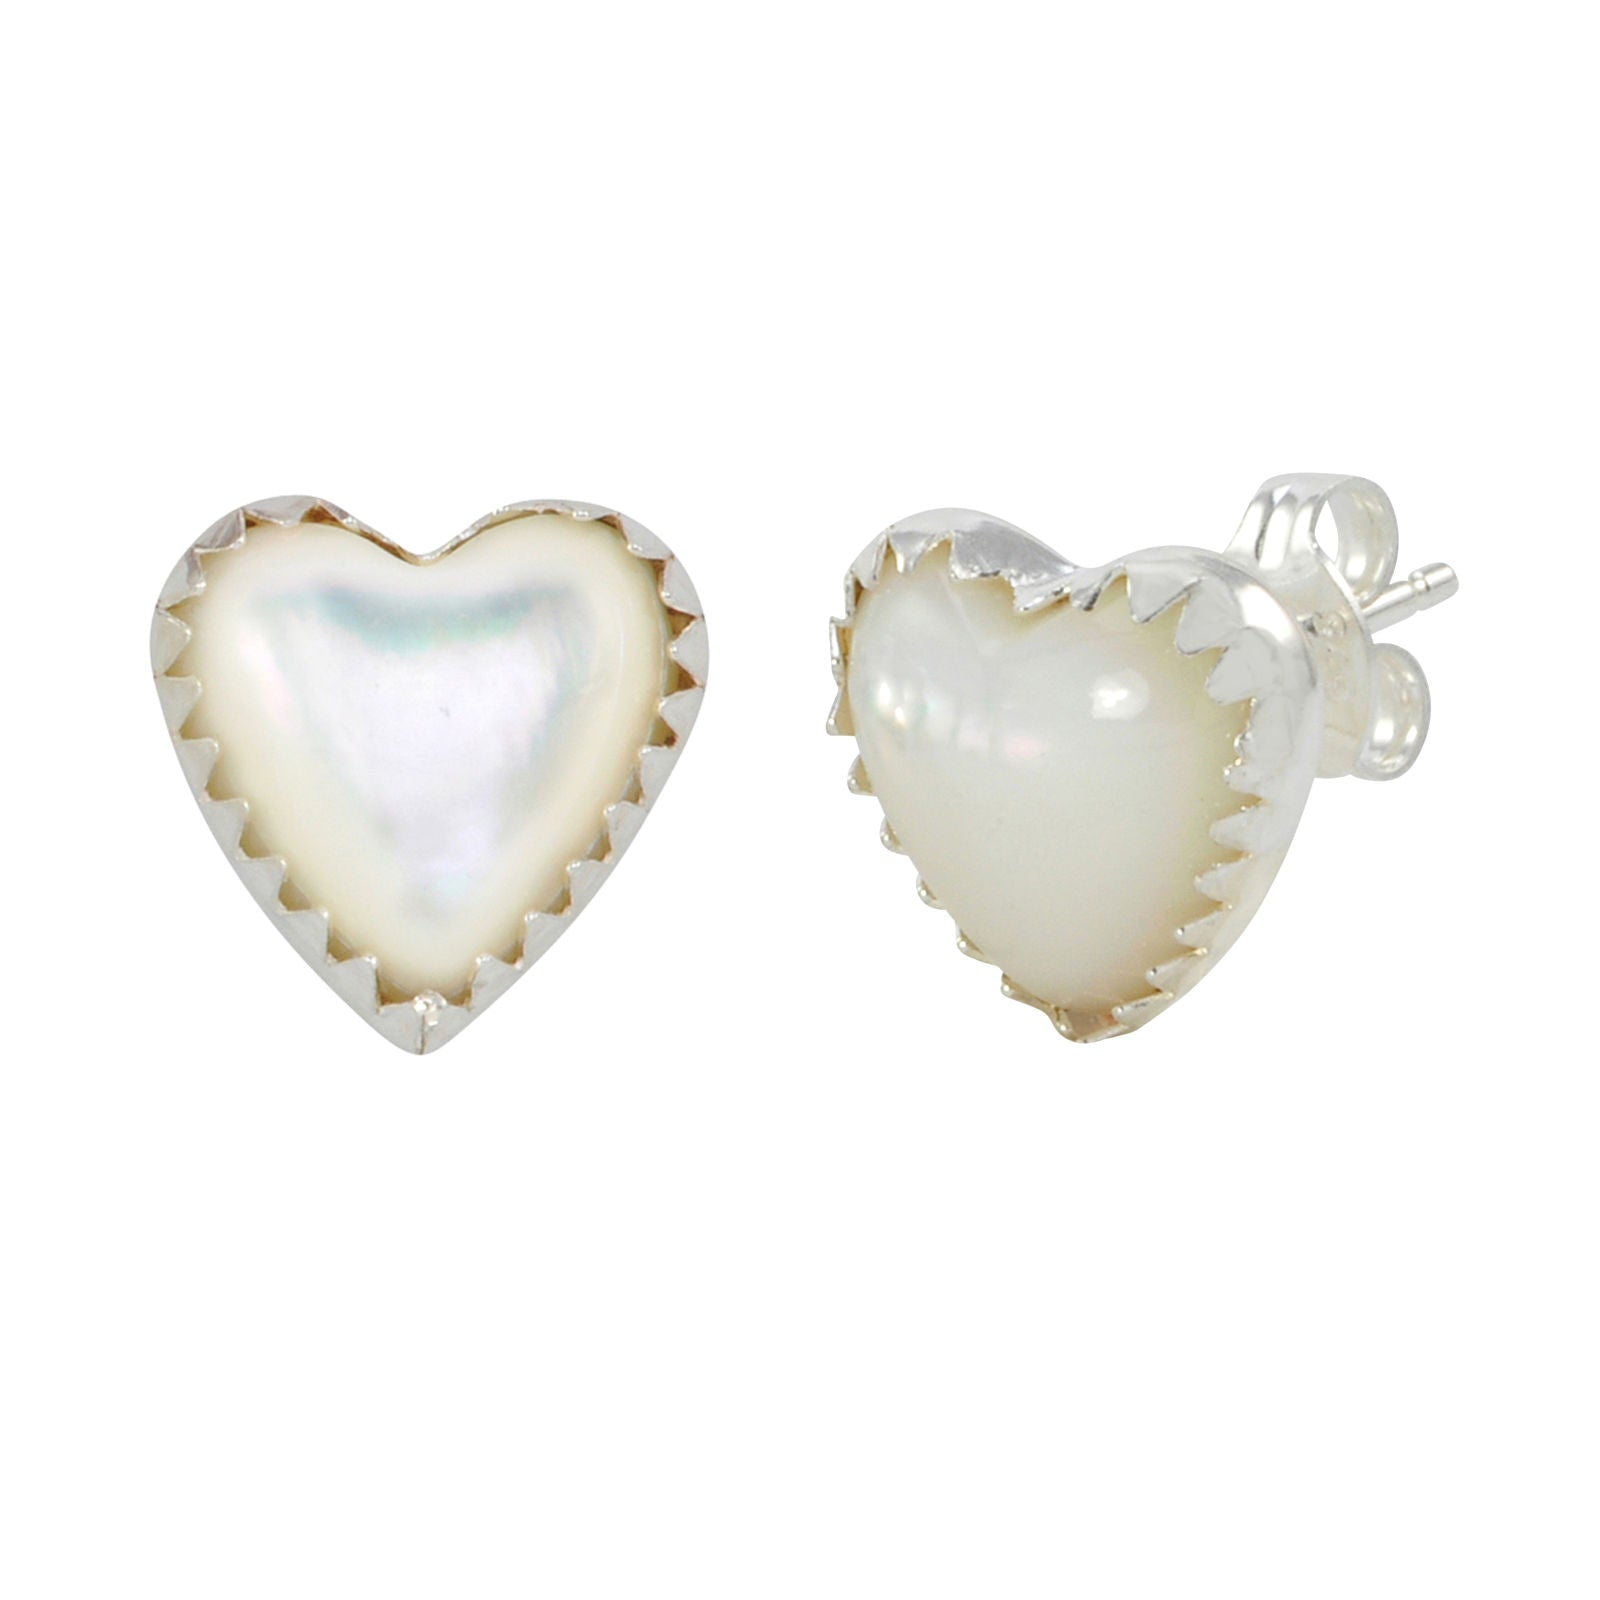 heartshapedearringswhite shaped clear ablaze plated inlaid earrings jewelry stud wholesale sterling silver products amethyst heart